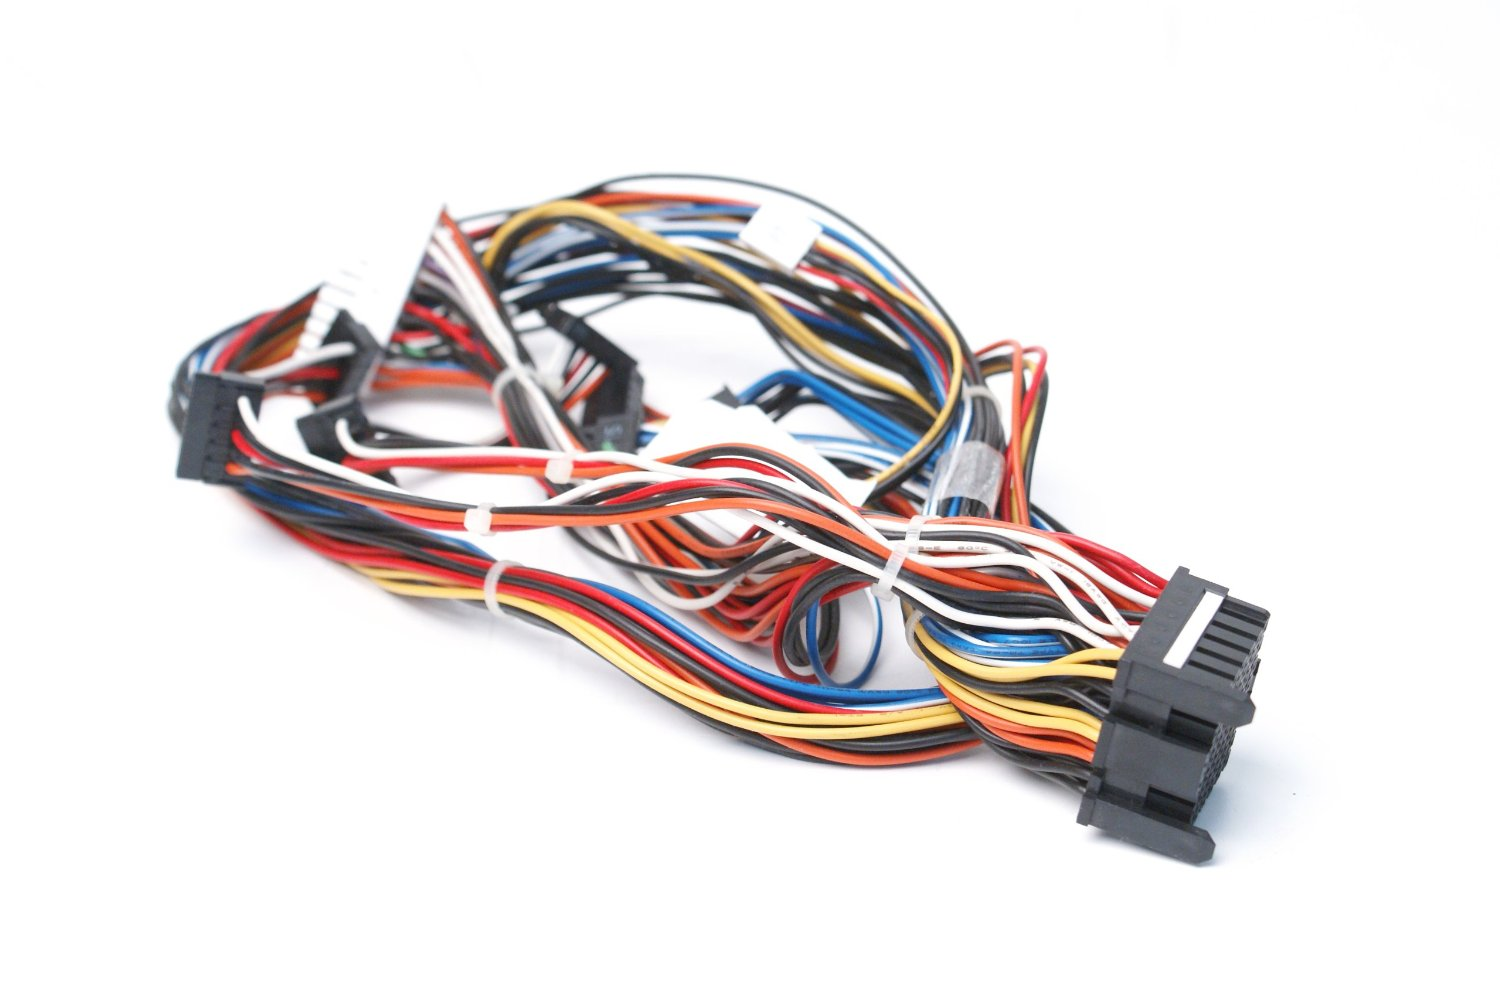 hight resolution of get quotations dell precision t3400 525w power supply psu cable wiring harness kp500